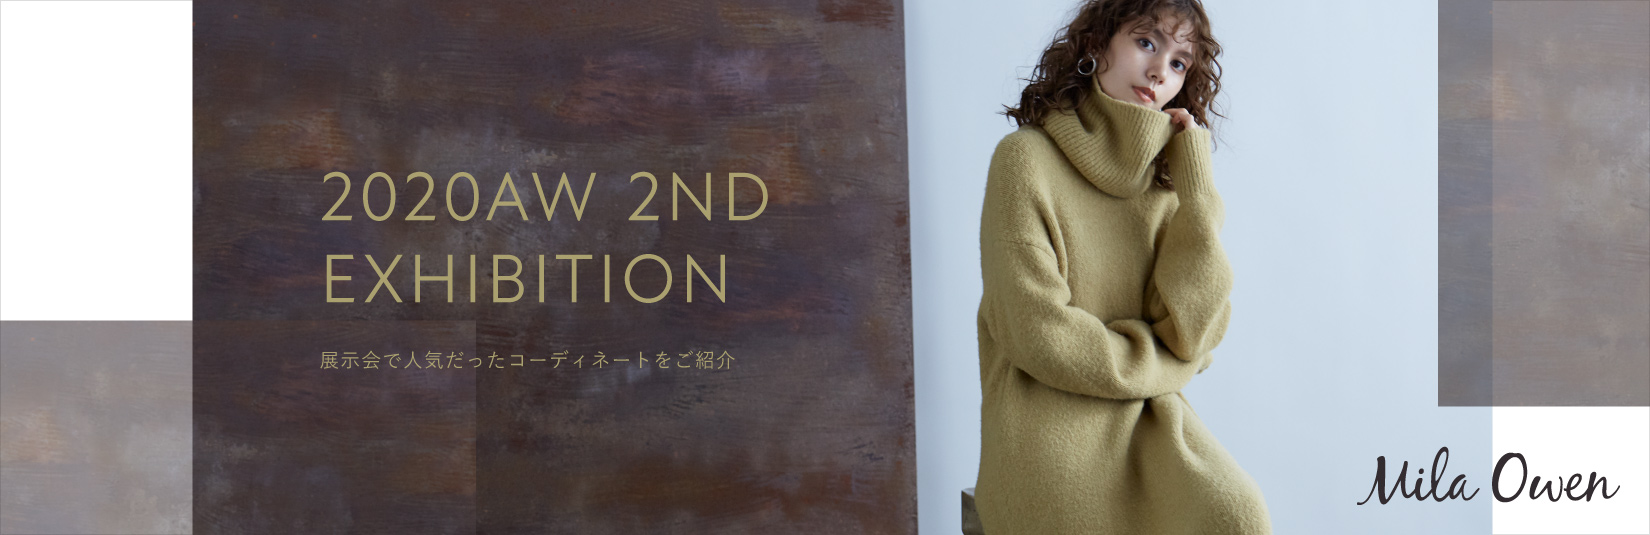 2020 AW 2ND EXHIBITION